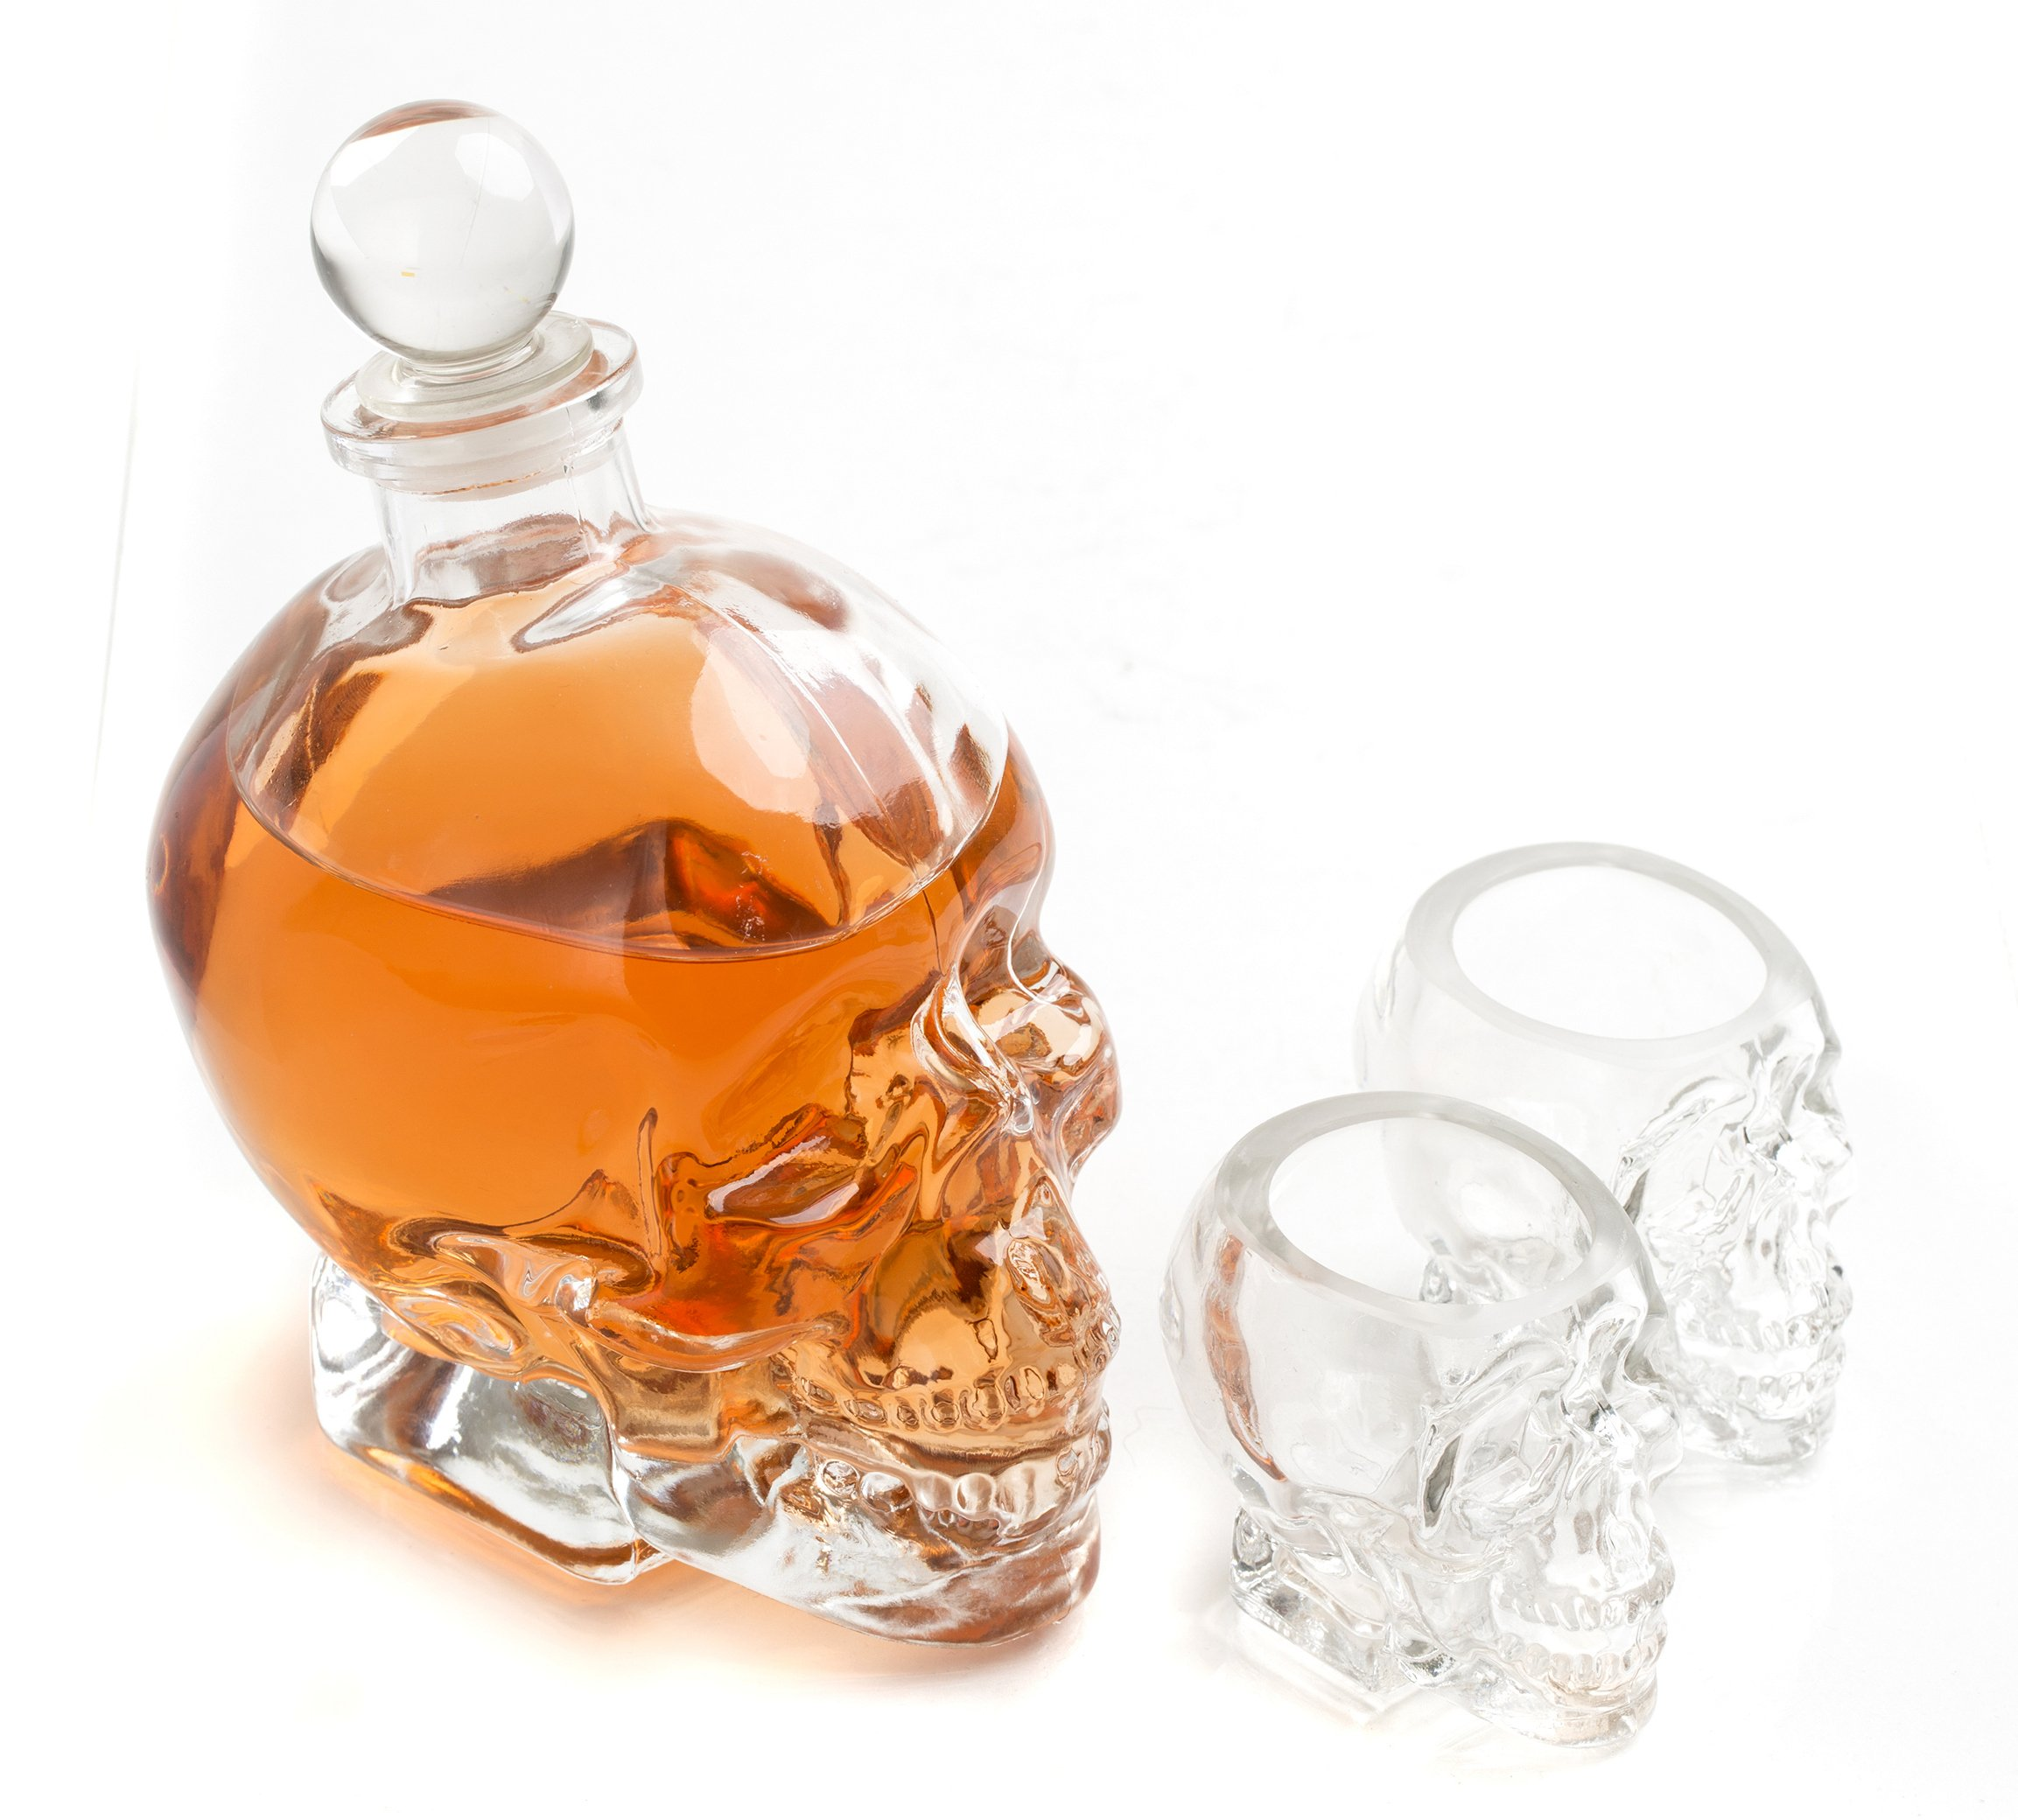 Large Skull Face Decanter with Skull Shot Glasses Use Skull Head Cup For A Whiskey, Scotch and Vodka Shot Glass, 25 Ounce Decanter 3 Ounces Shot Glass